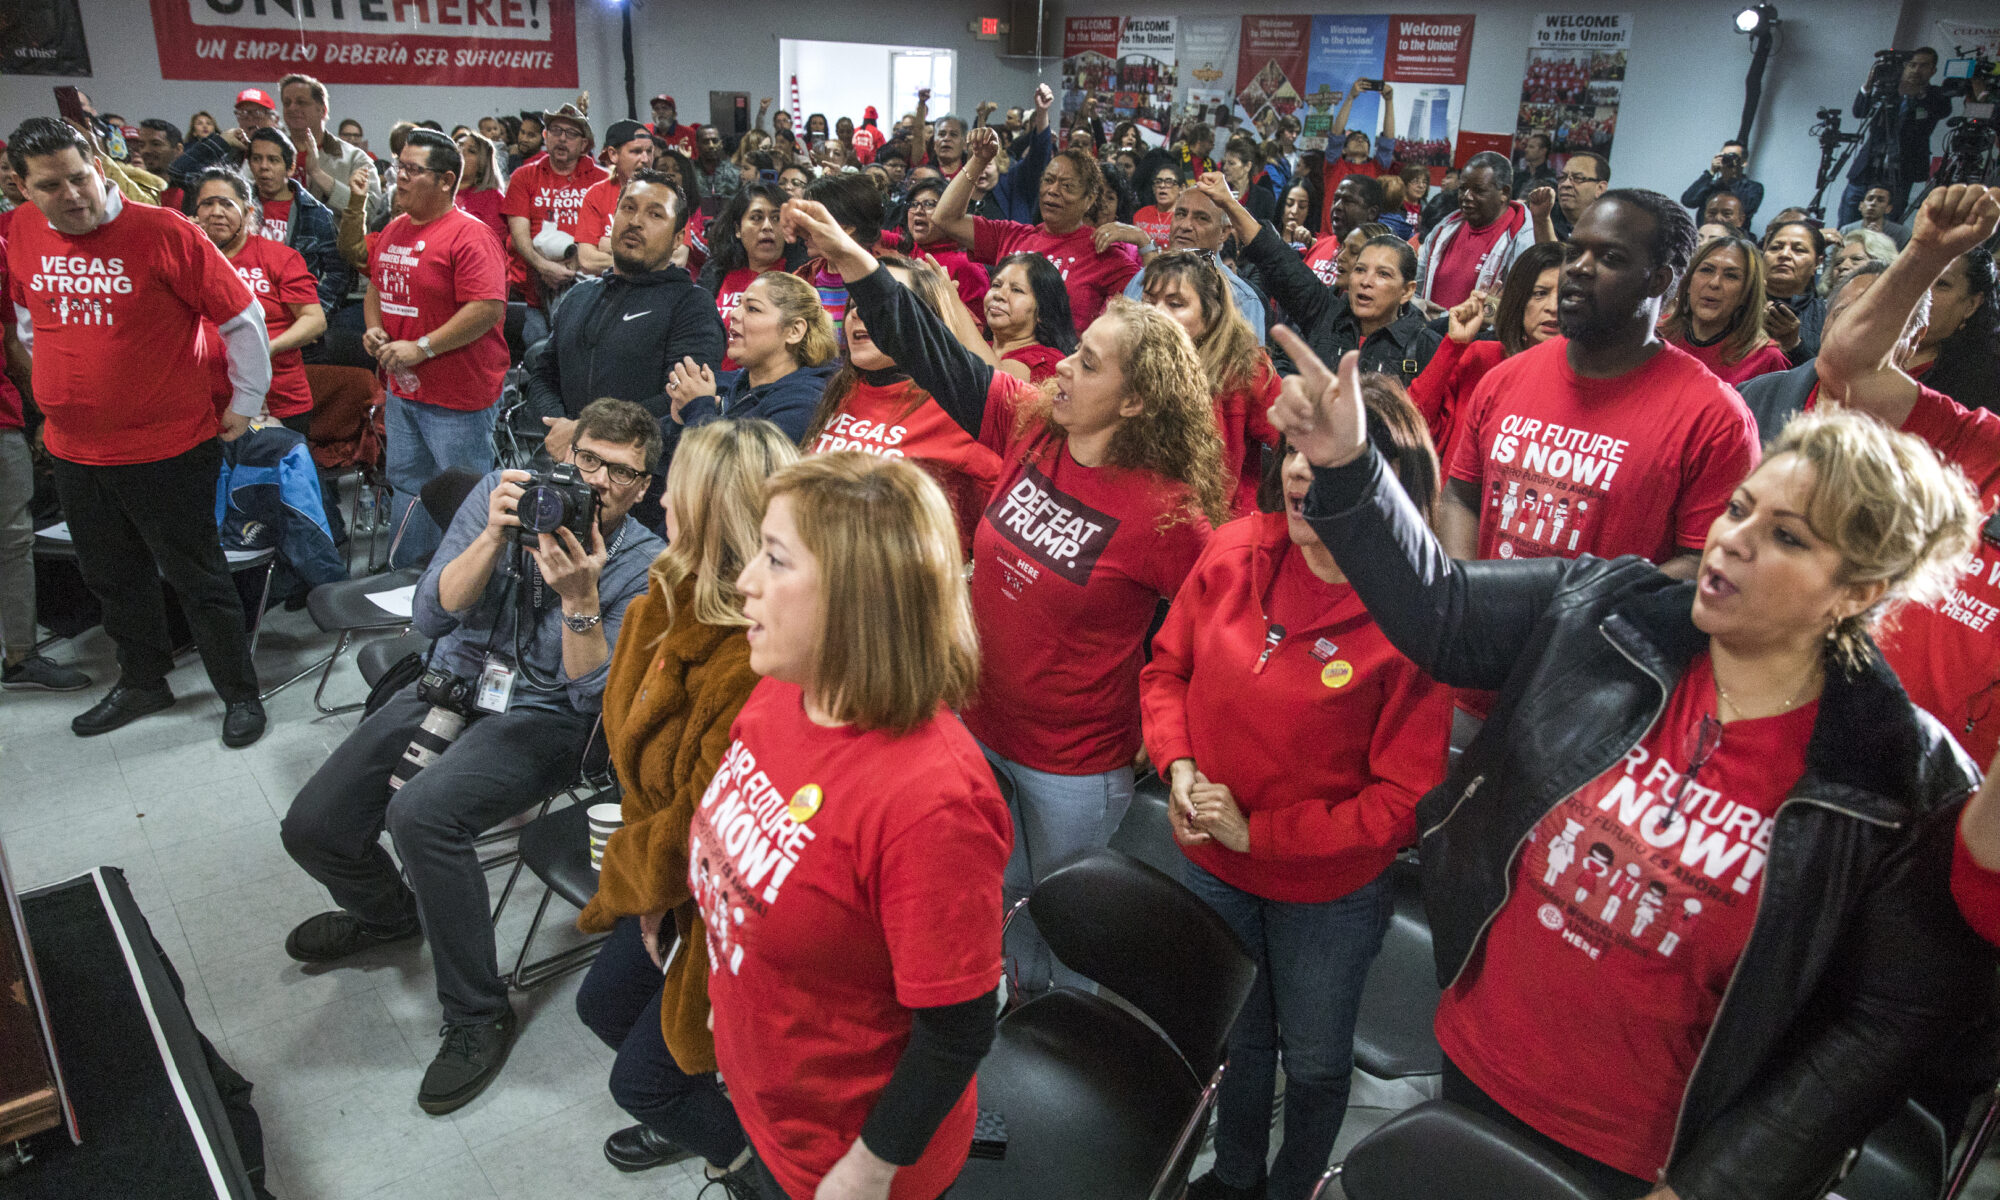 Union members in red shirts at a town hall event